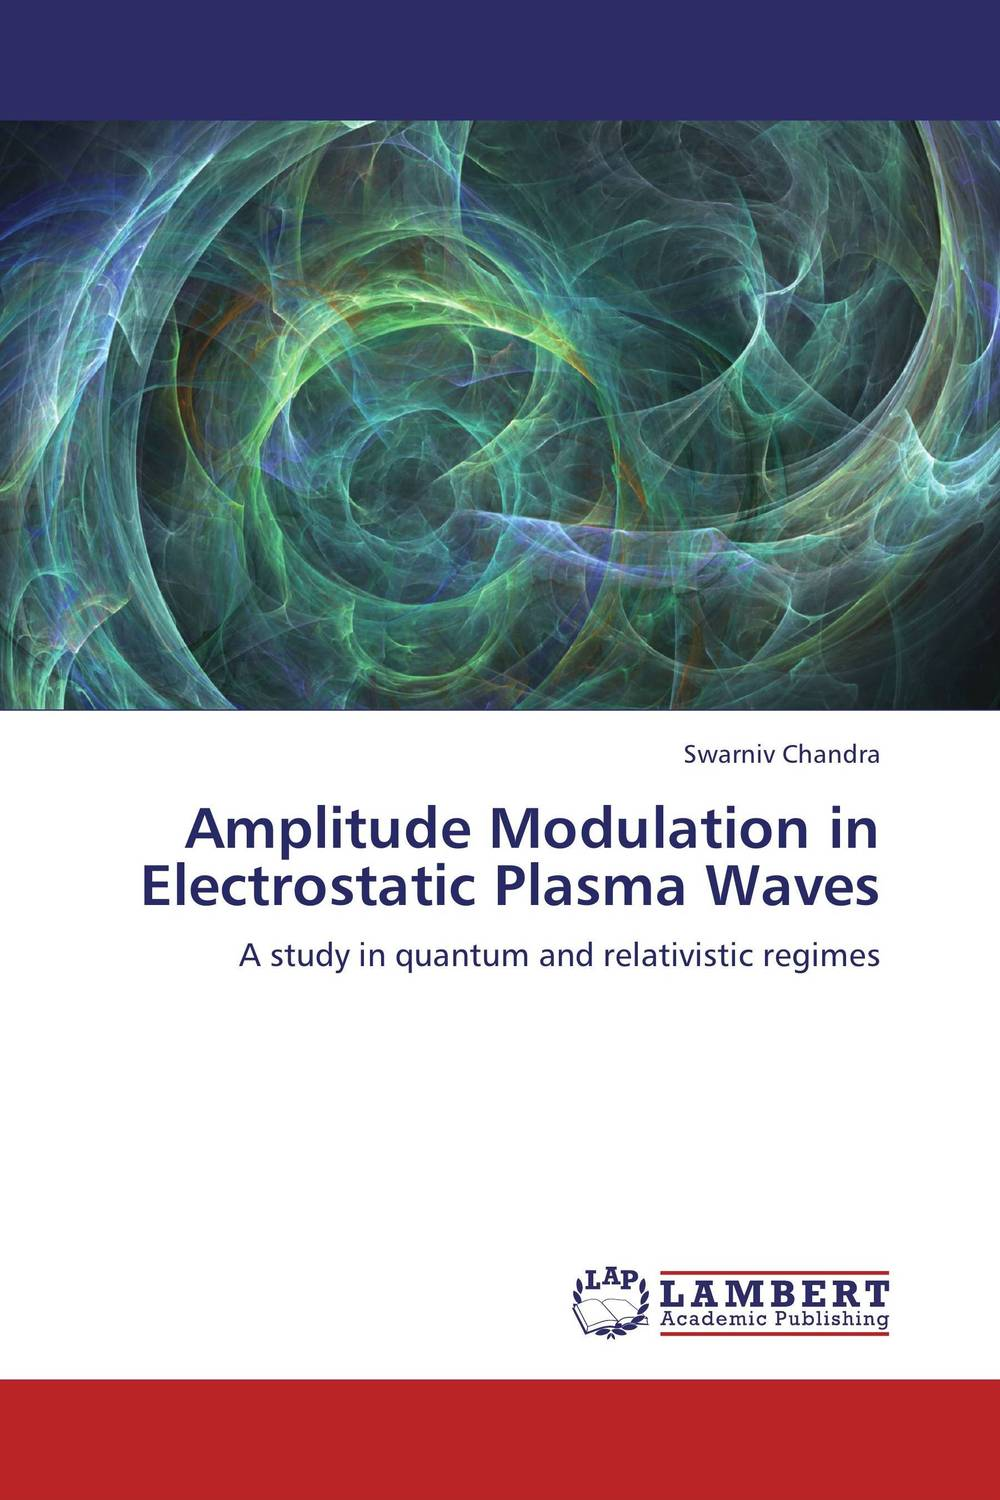 Amplitude Modulation in Electrostatic Plasma Waves text book of plasma physics